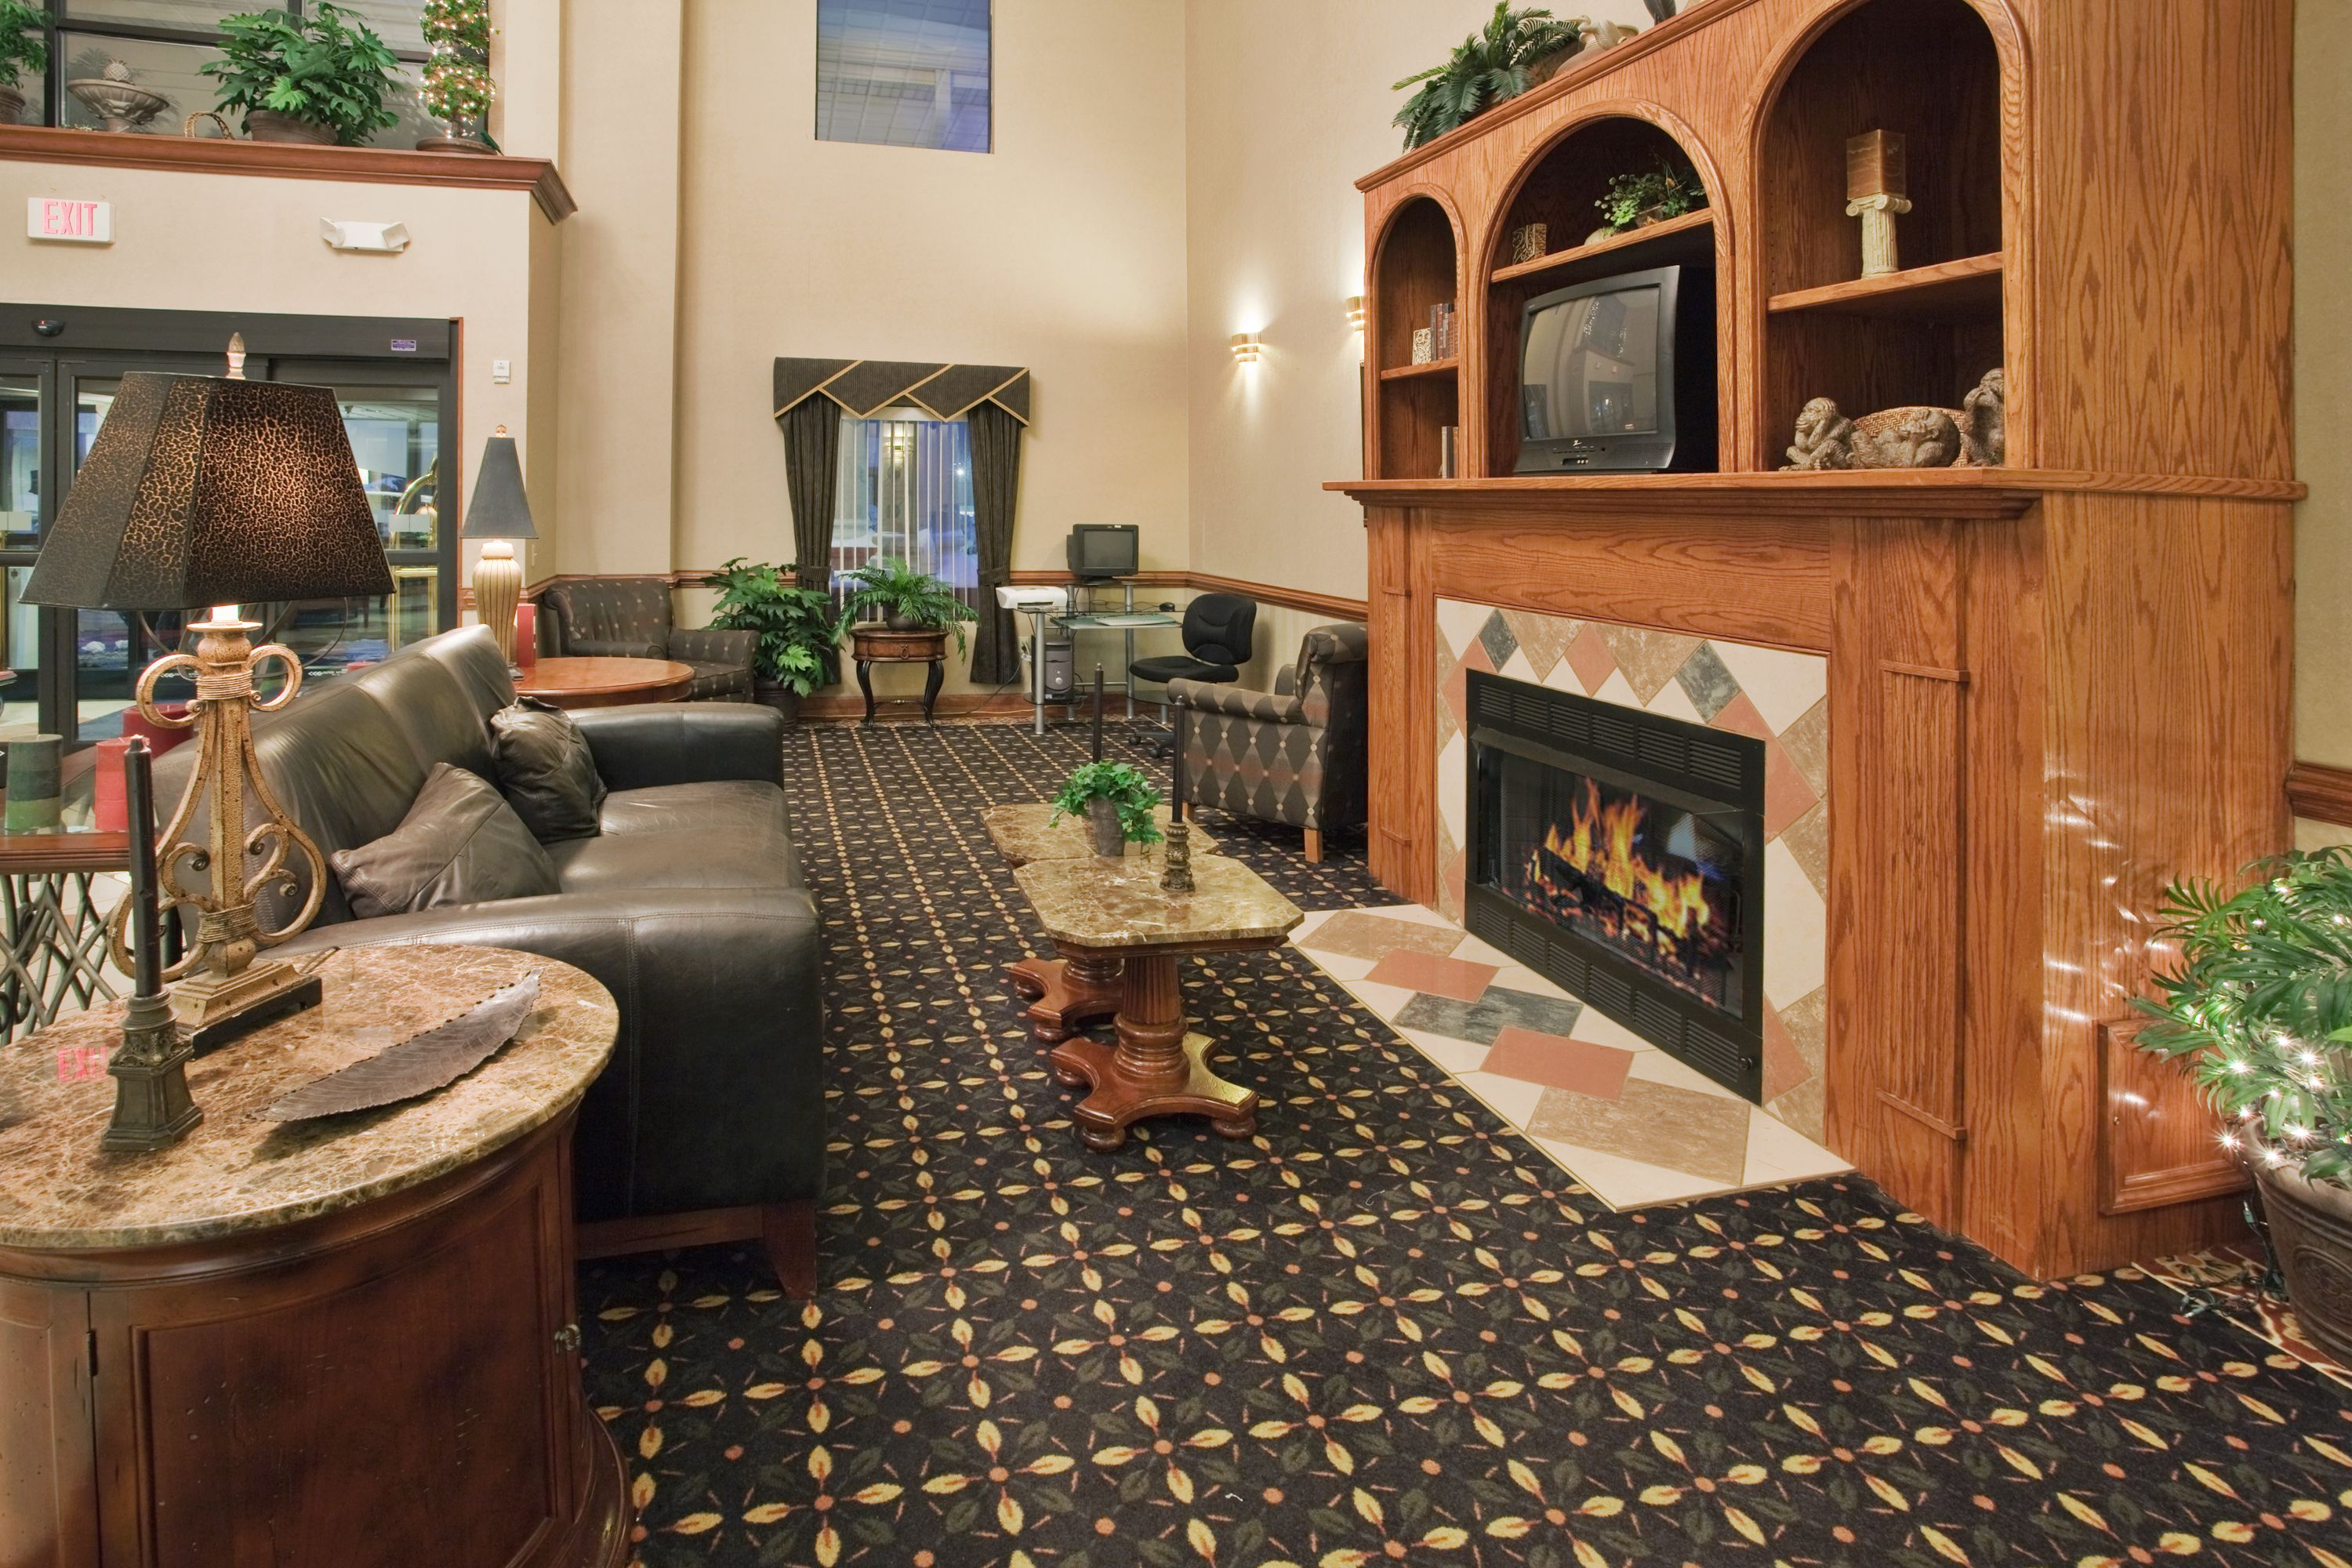 Holiday Inn Express & Suites Laurinburg image 4